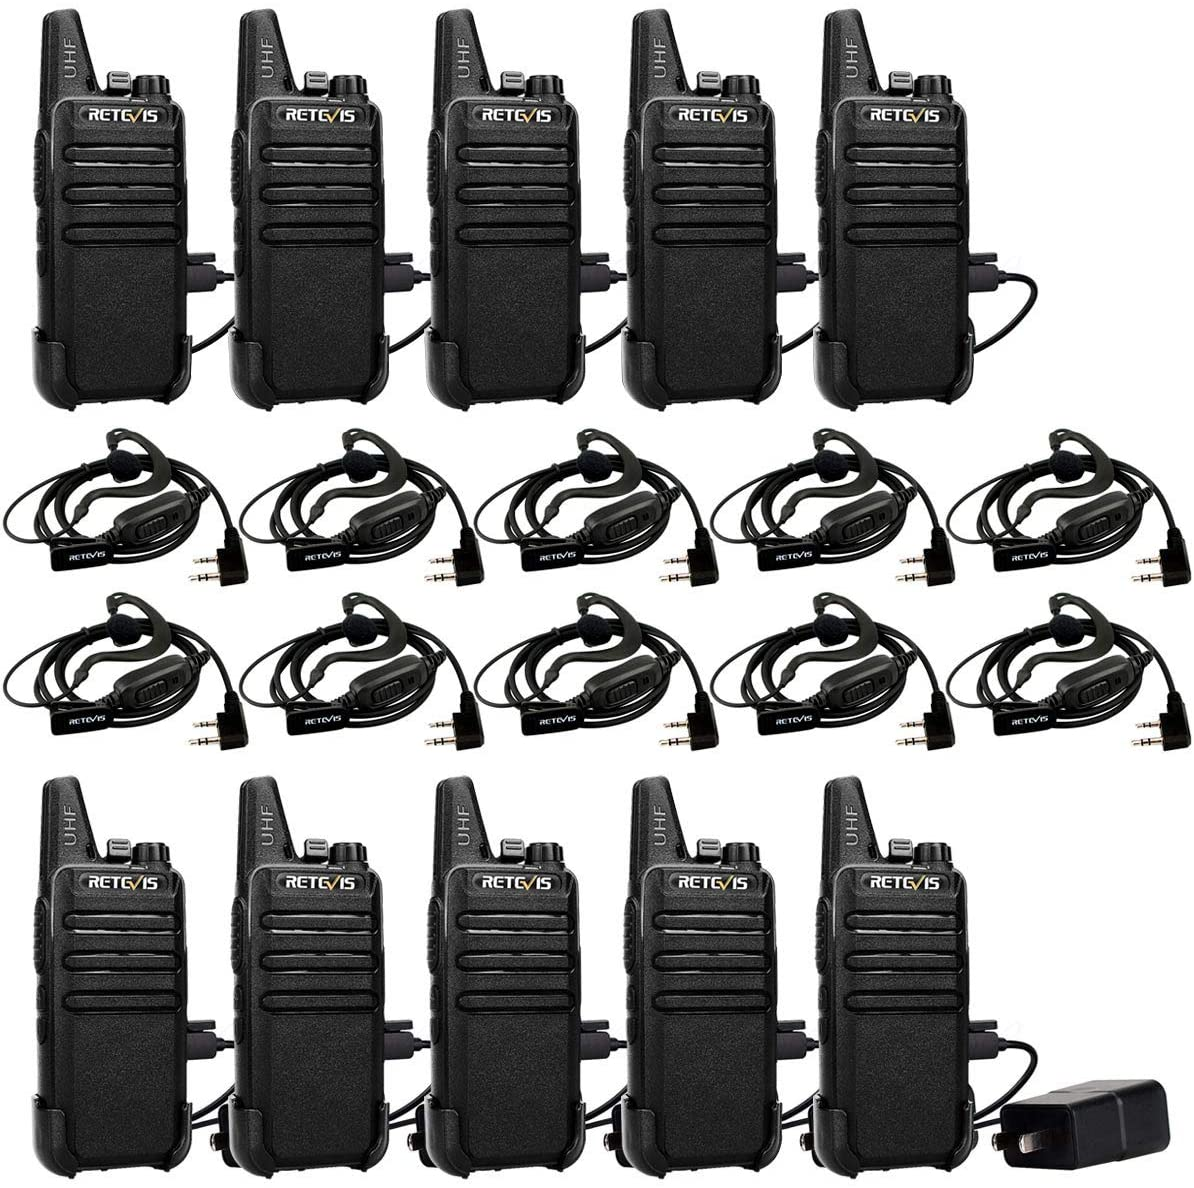 Retevis RT22 2 Way Radios Walkie Talkies,Rechargeable Long Range Two Way Radio,16 CH VOX Small Emergency 2 Pin Earpiece Headset,for School Retail Church Restaurant 10 Pack